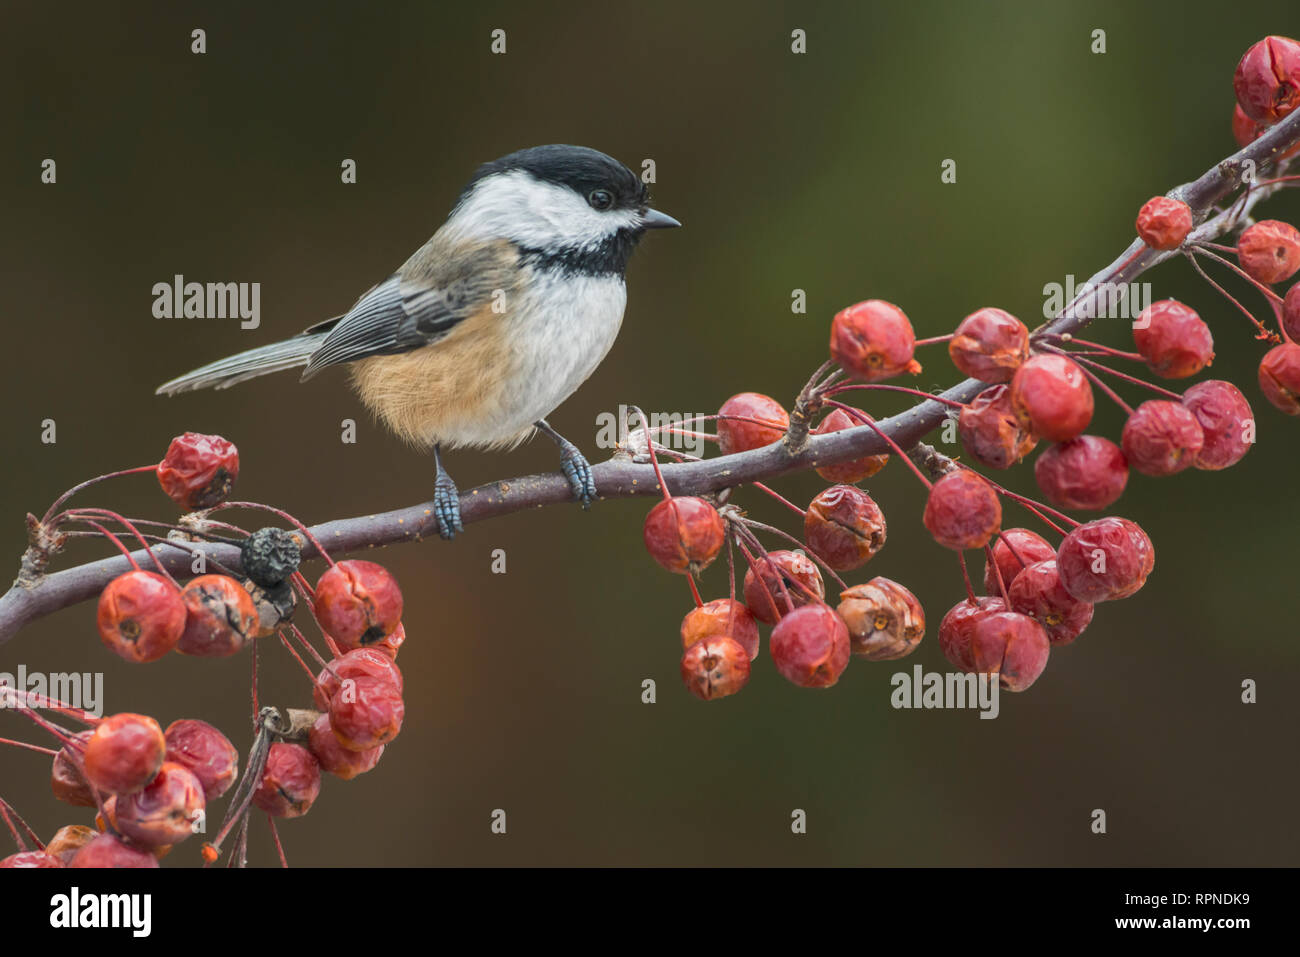 zoology / animals, avian / bird (aves), Black-capped Chickadee (Parus atricapillus) near Thornton, Ont, Additional-Rights-Clearance-Info-Not-Available - Stock Image